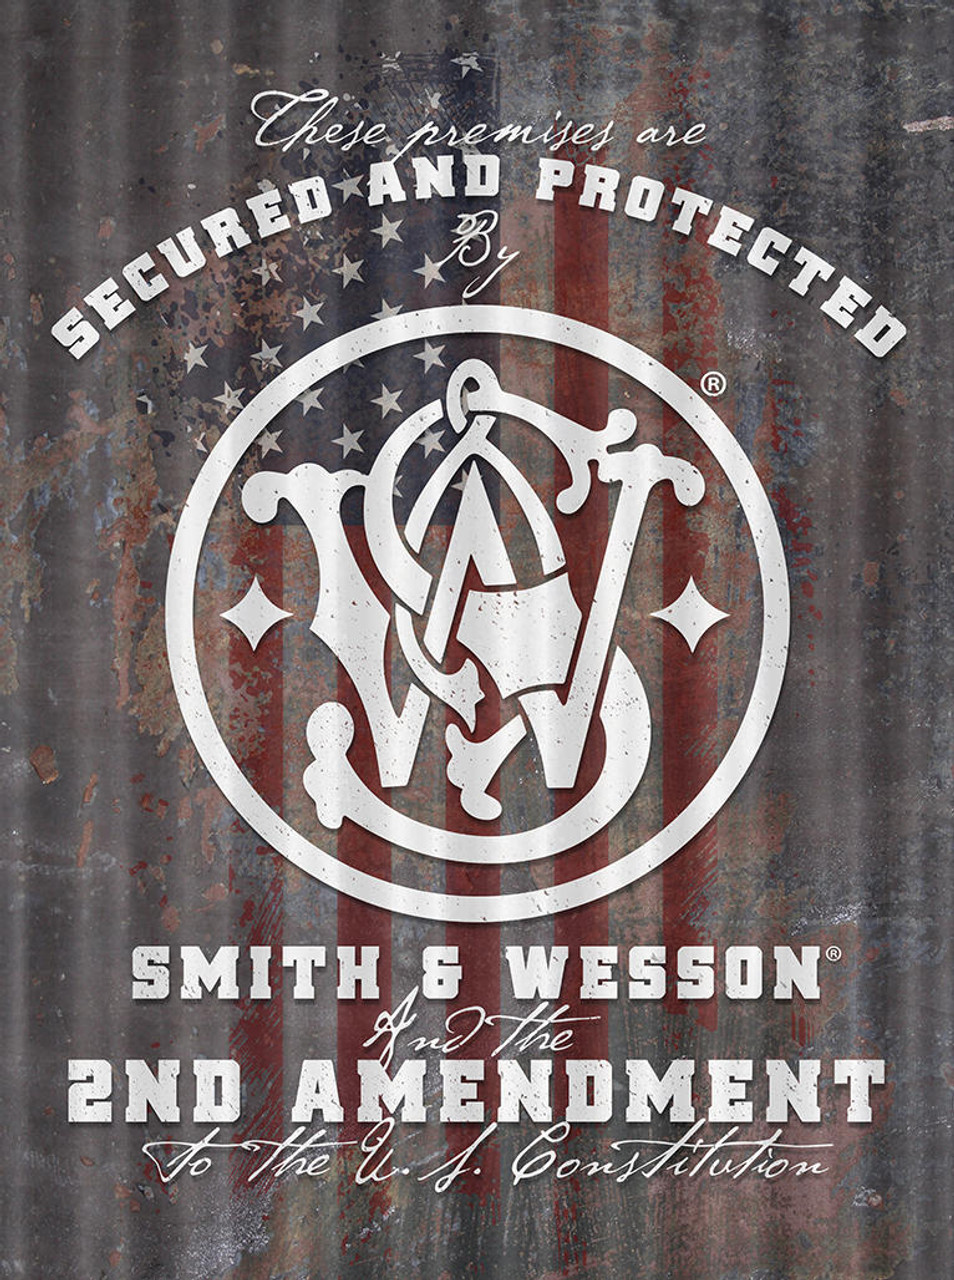 Smith and Wesson Corrugated - Smith and Wesson